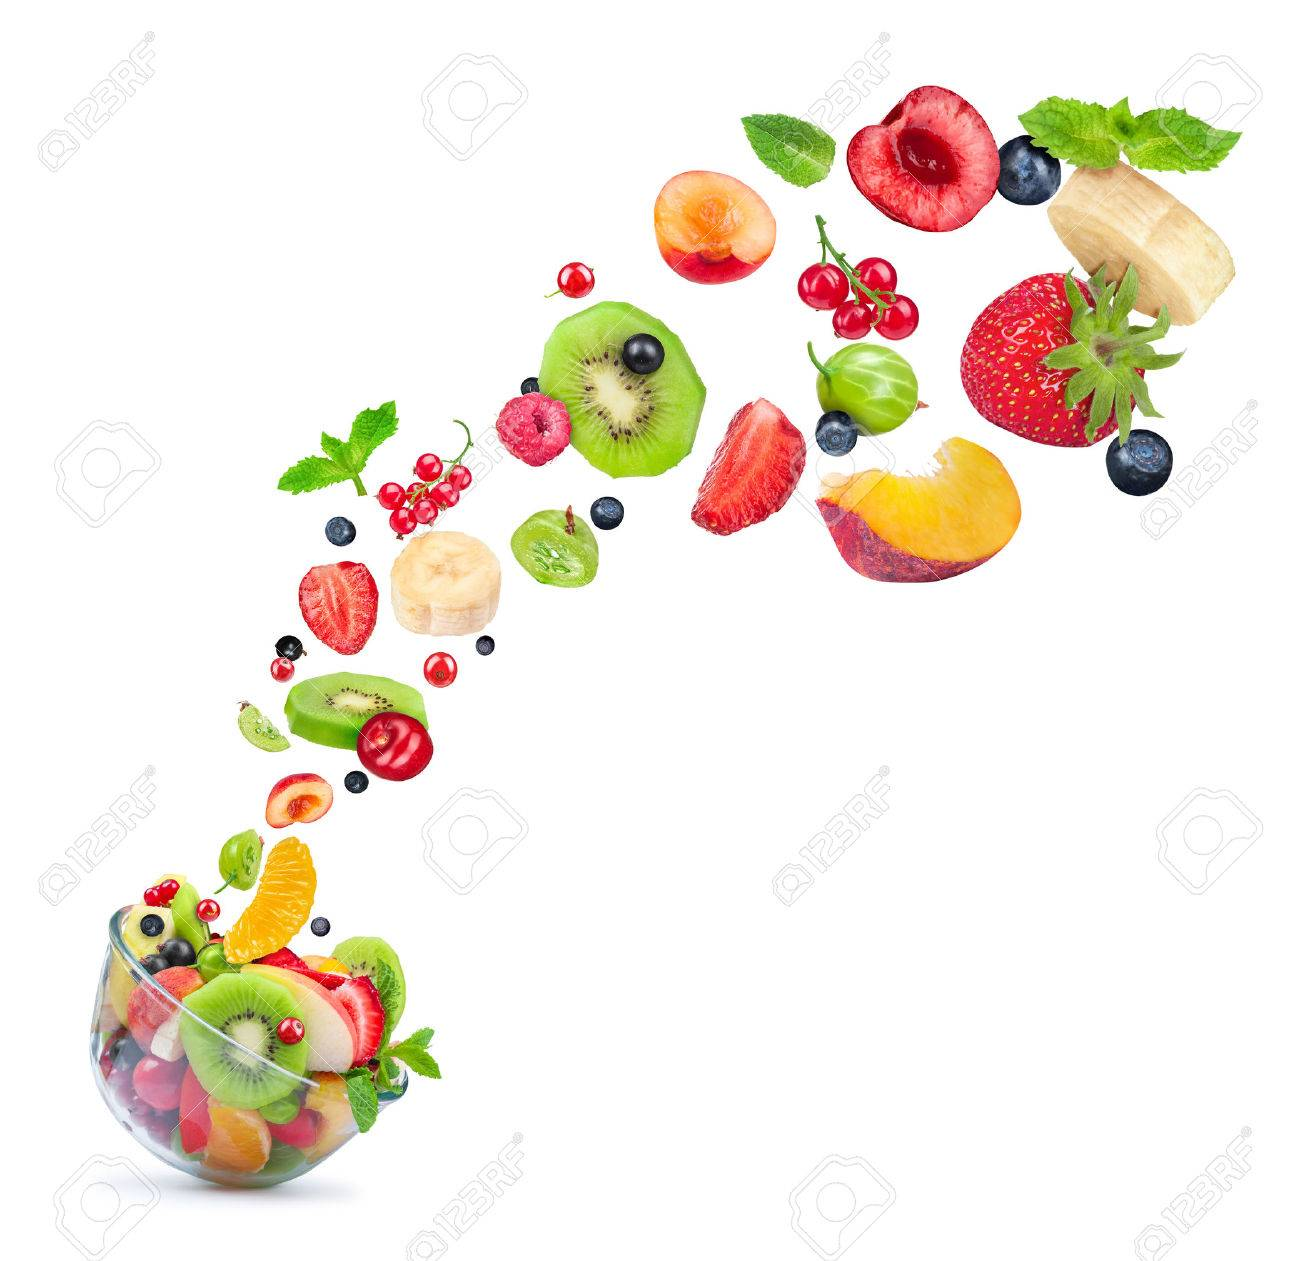 fruit salad ingredients in the air in a glass bowl isolated on white background - 42739957